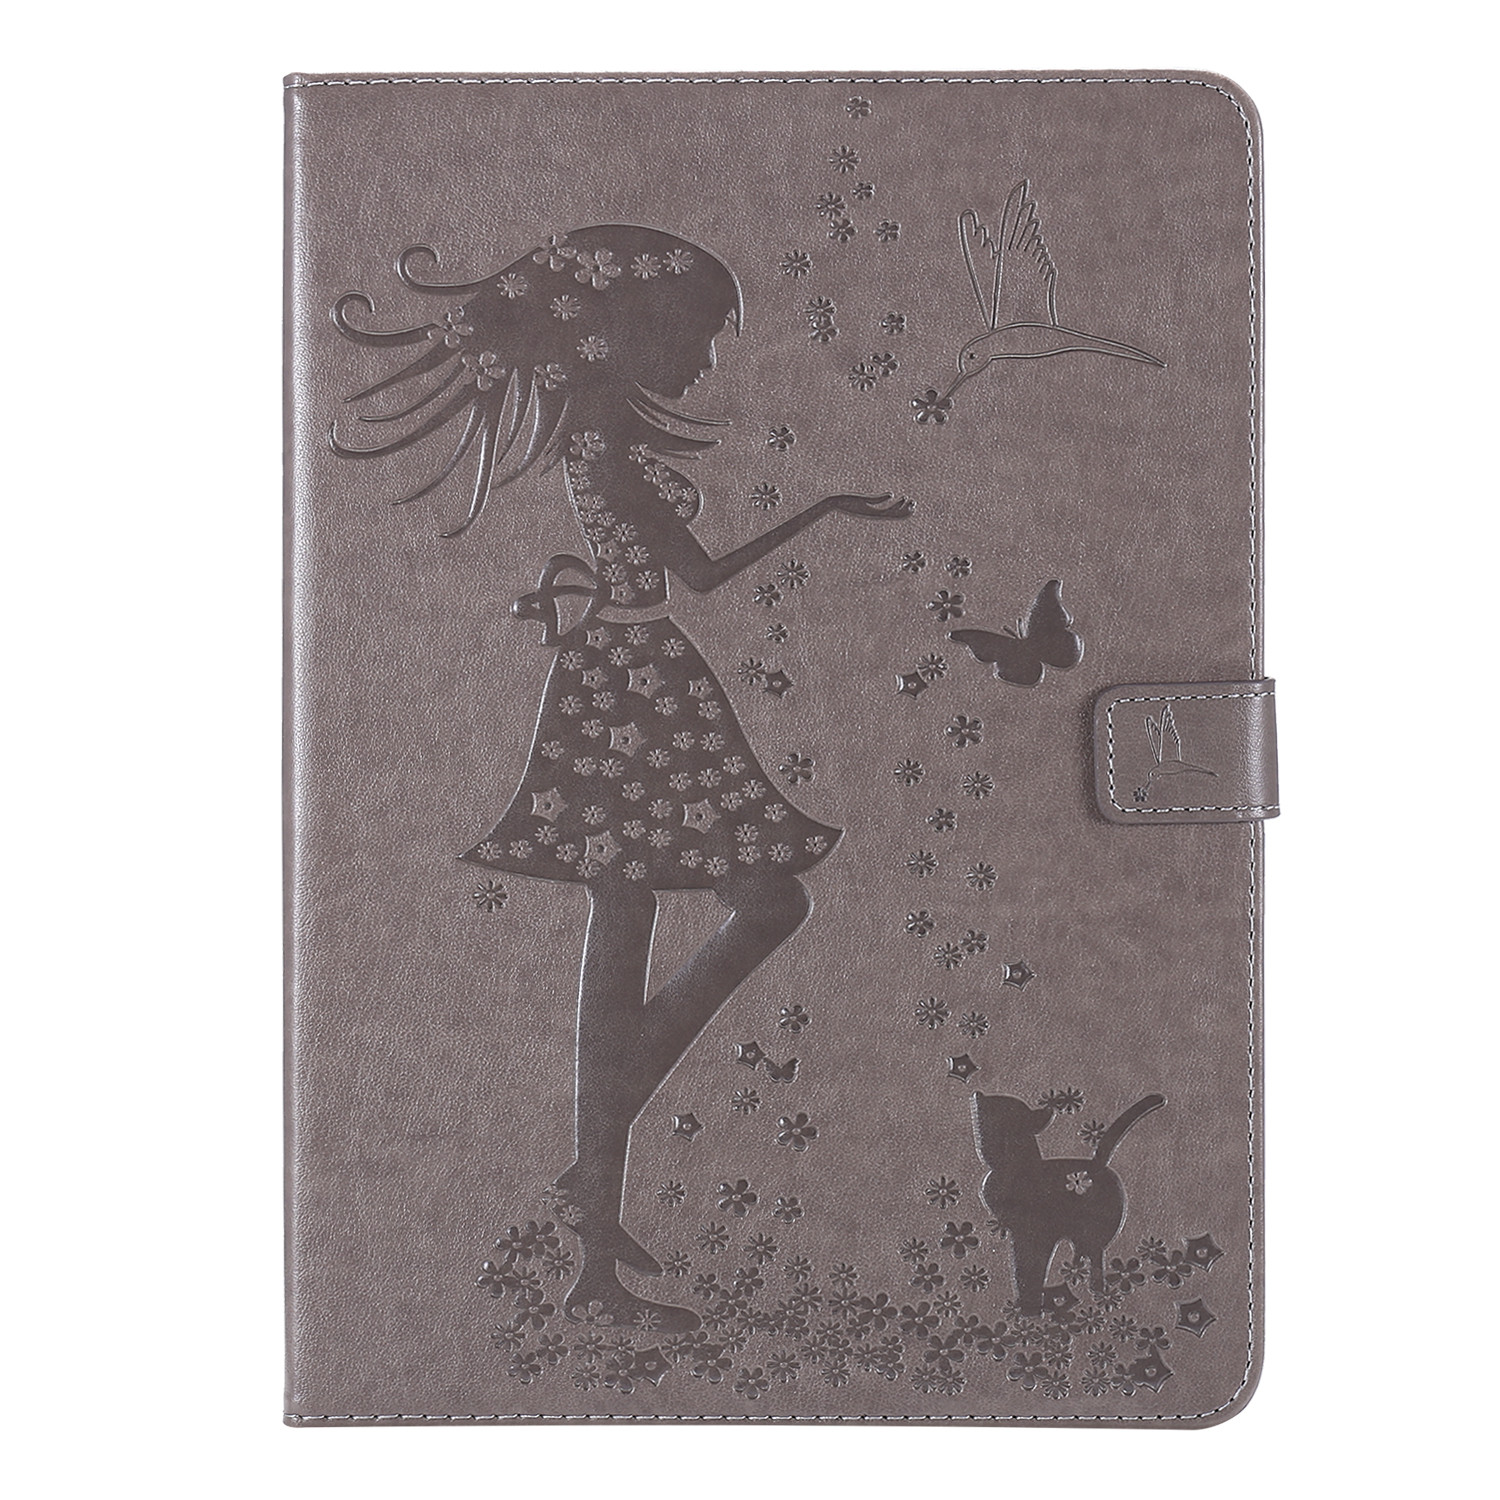 8 Beige For iPad 4th Gen 12 9 Cover 2020 Funda Cover Stand Leather Shell Folio Protective Case